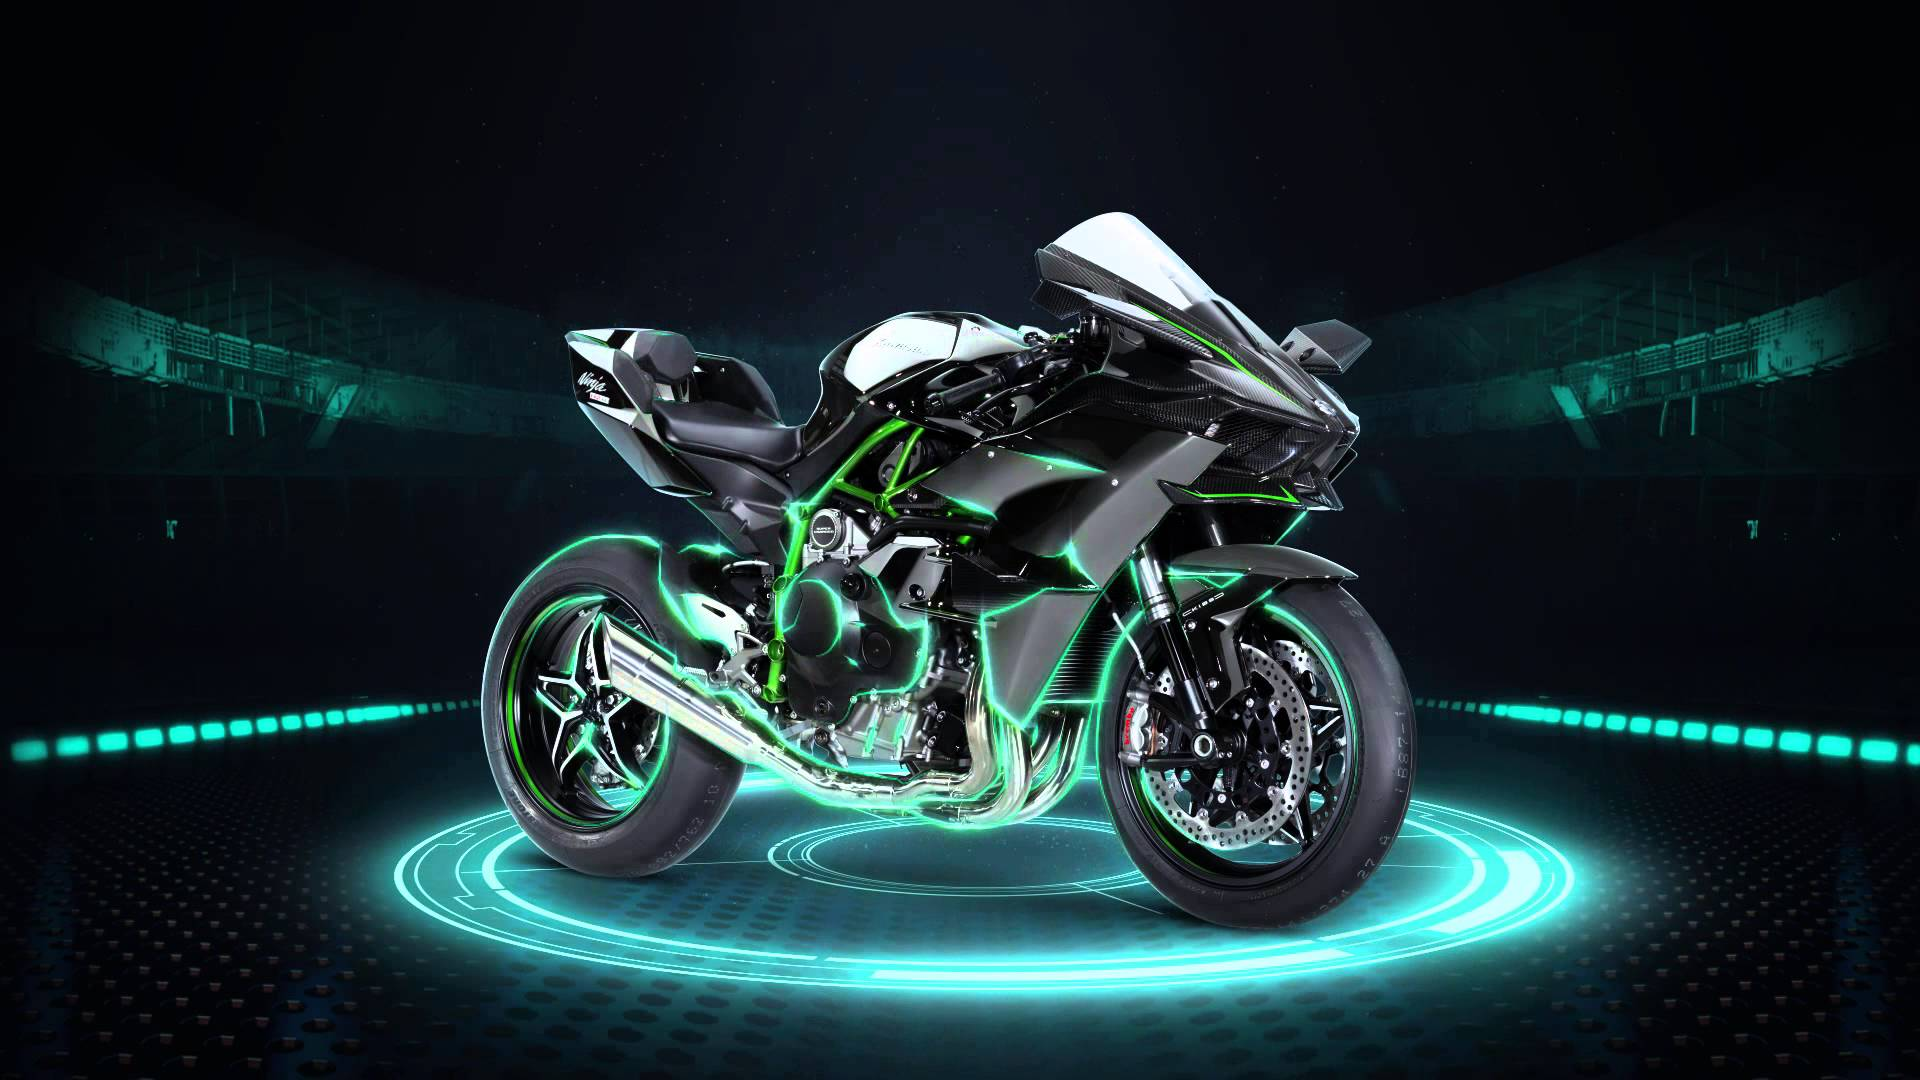 the ninja h2r wallpapers - wallpaper cave